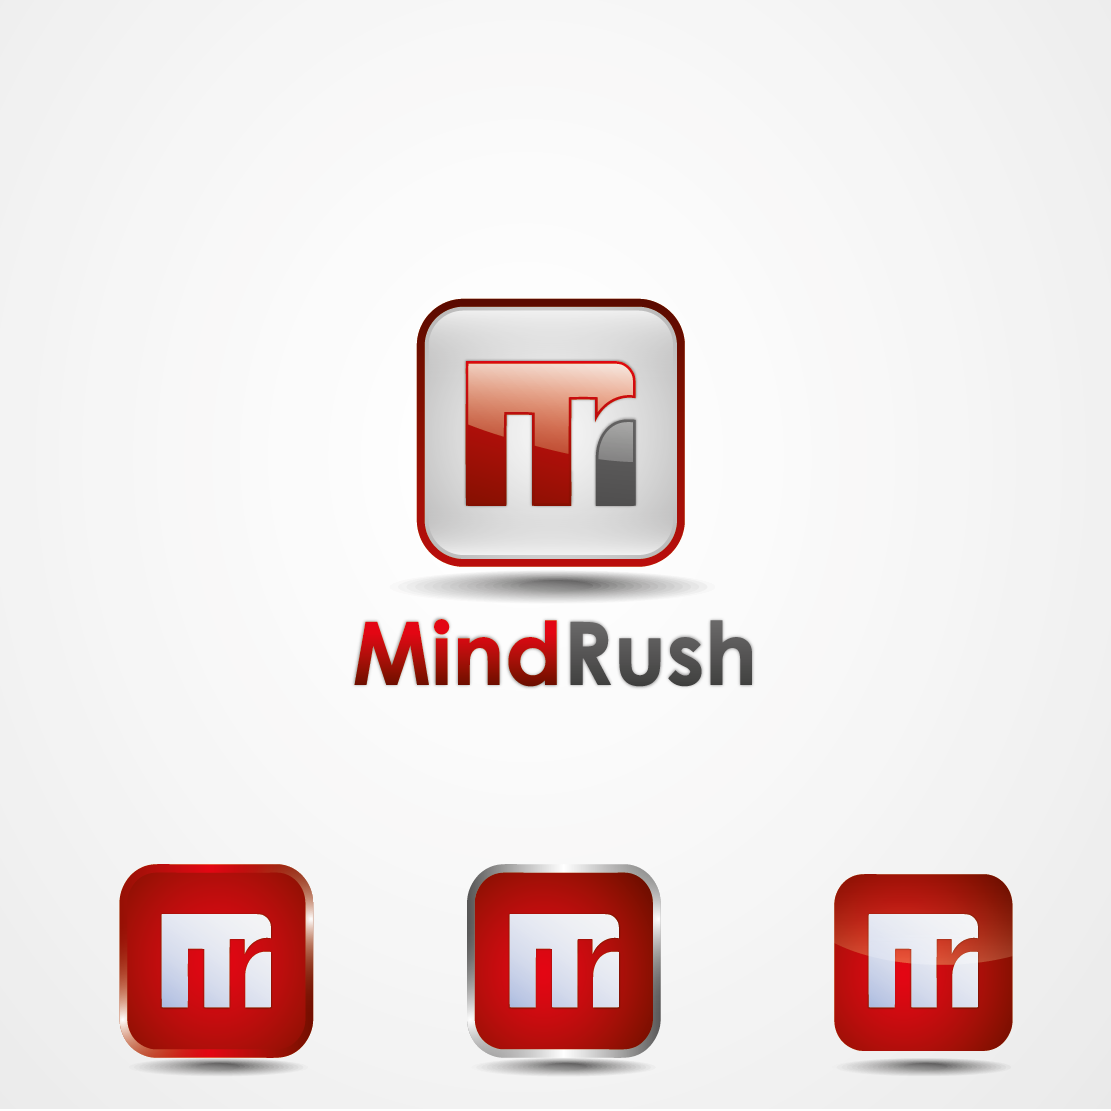 """MindRush needs Logo that scream """"We are Creative, Dynamic, and Energetic"""""""